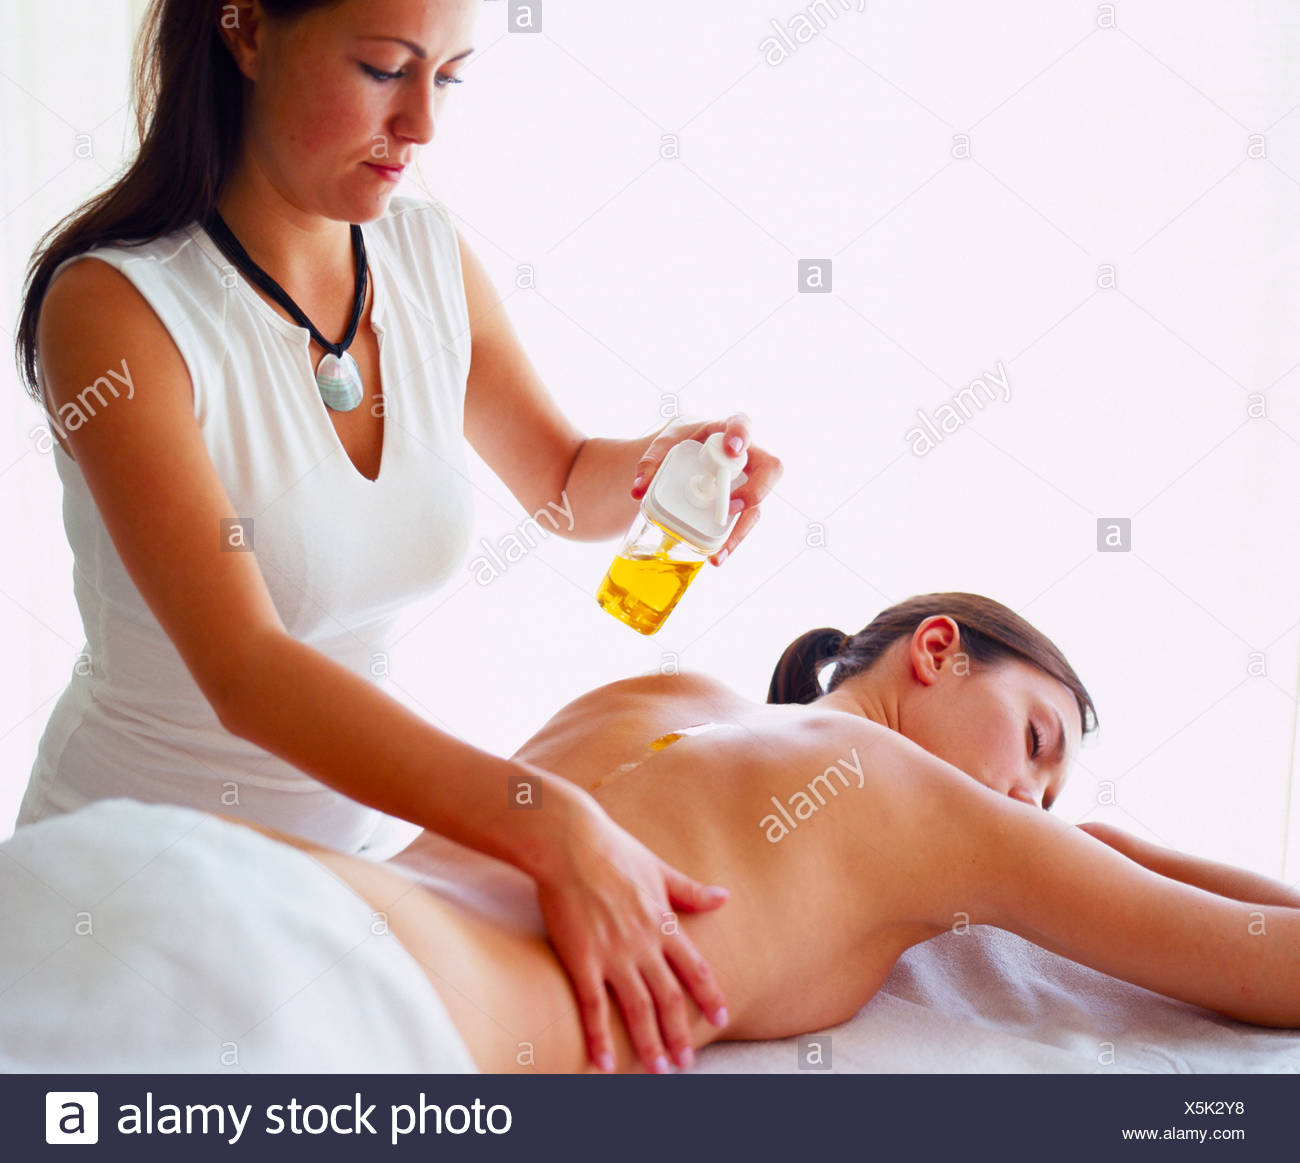 Rear view of young woman getting back massage from massage therapist - Stock Image